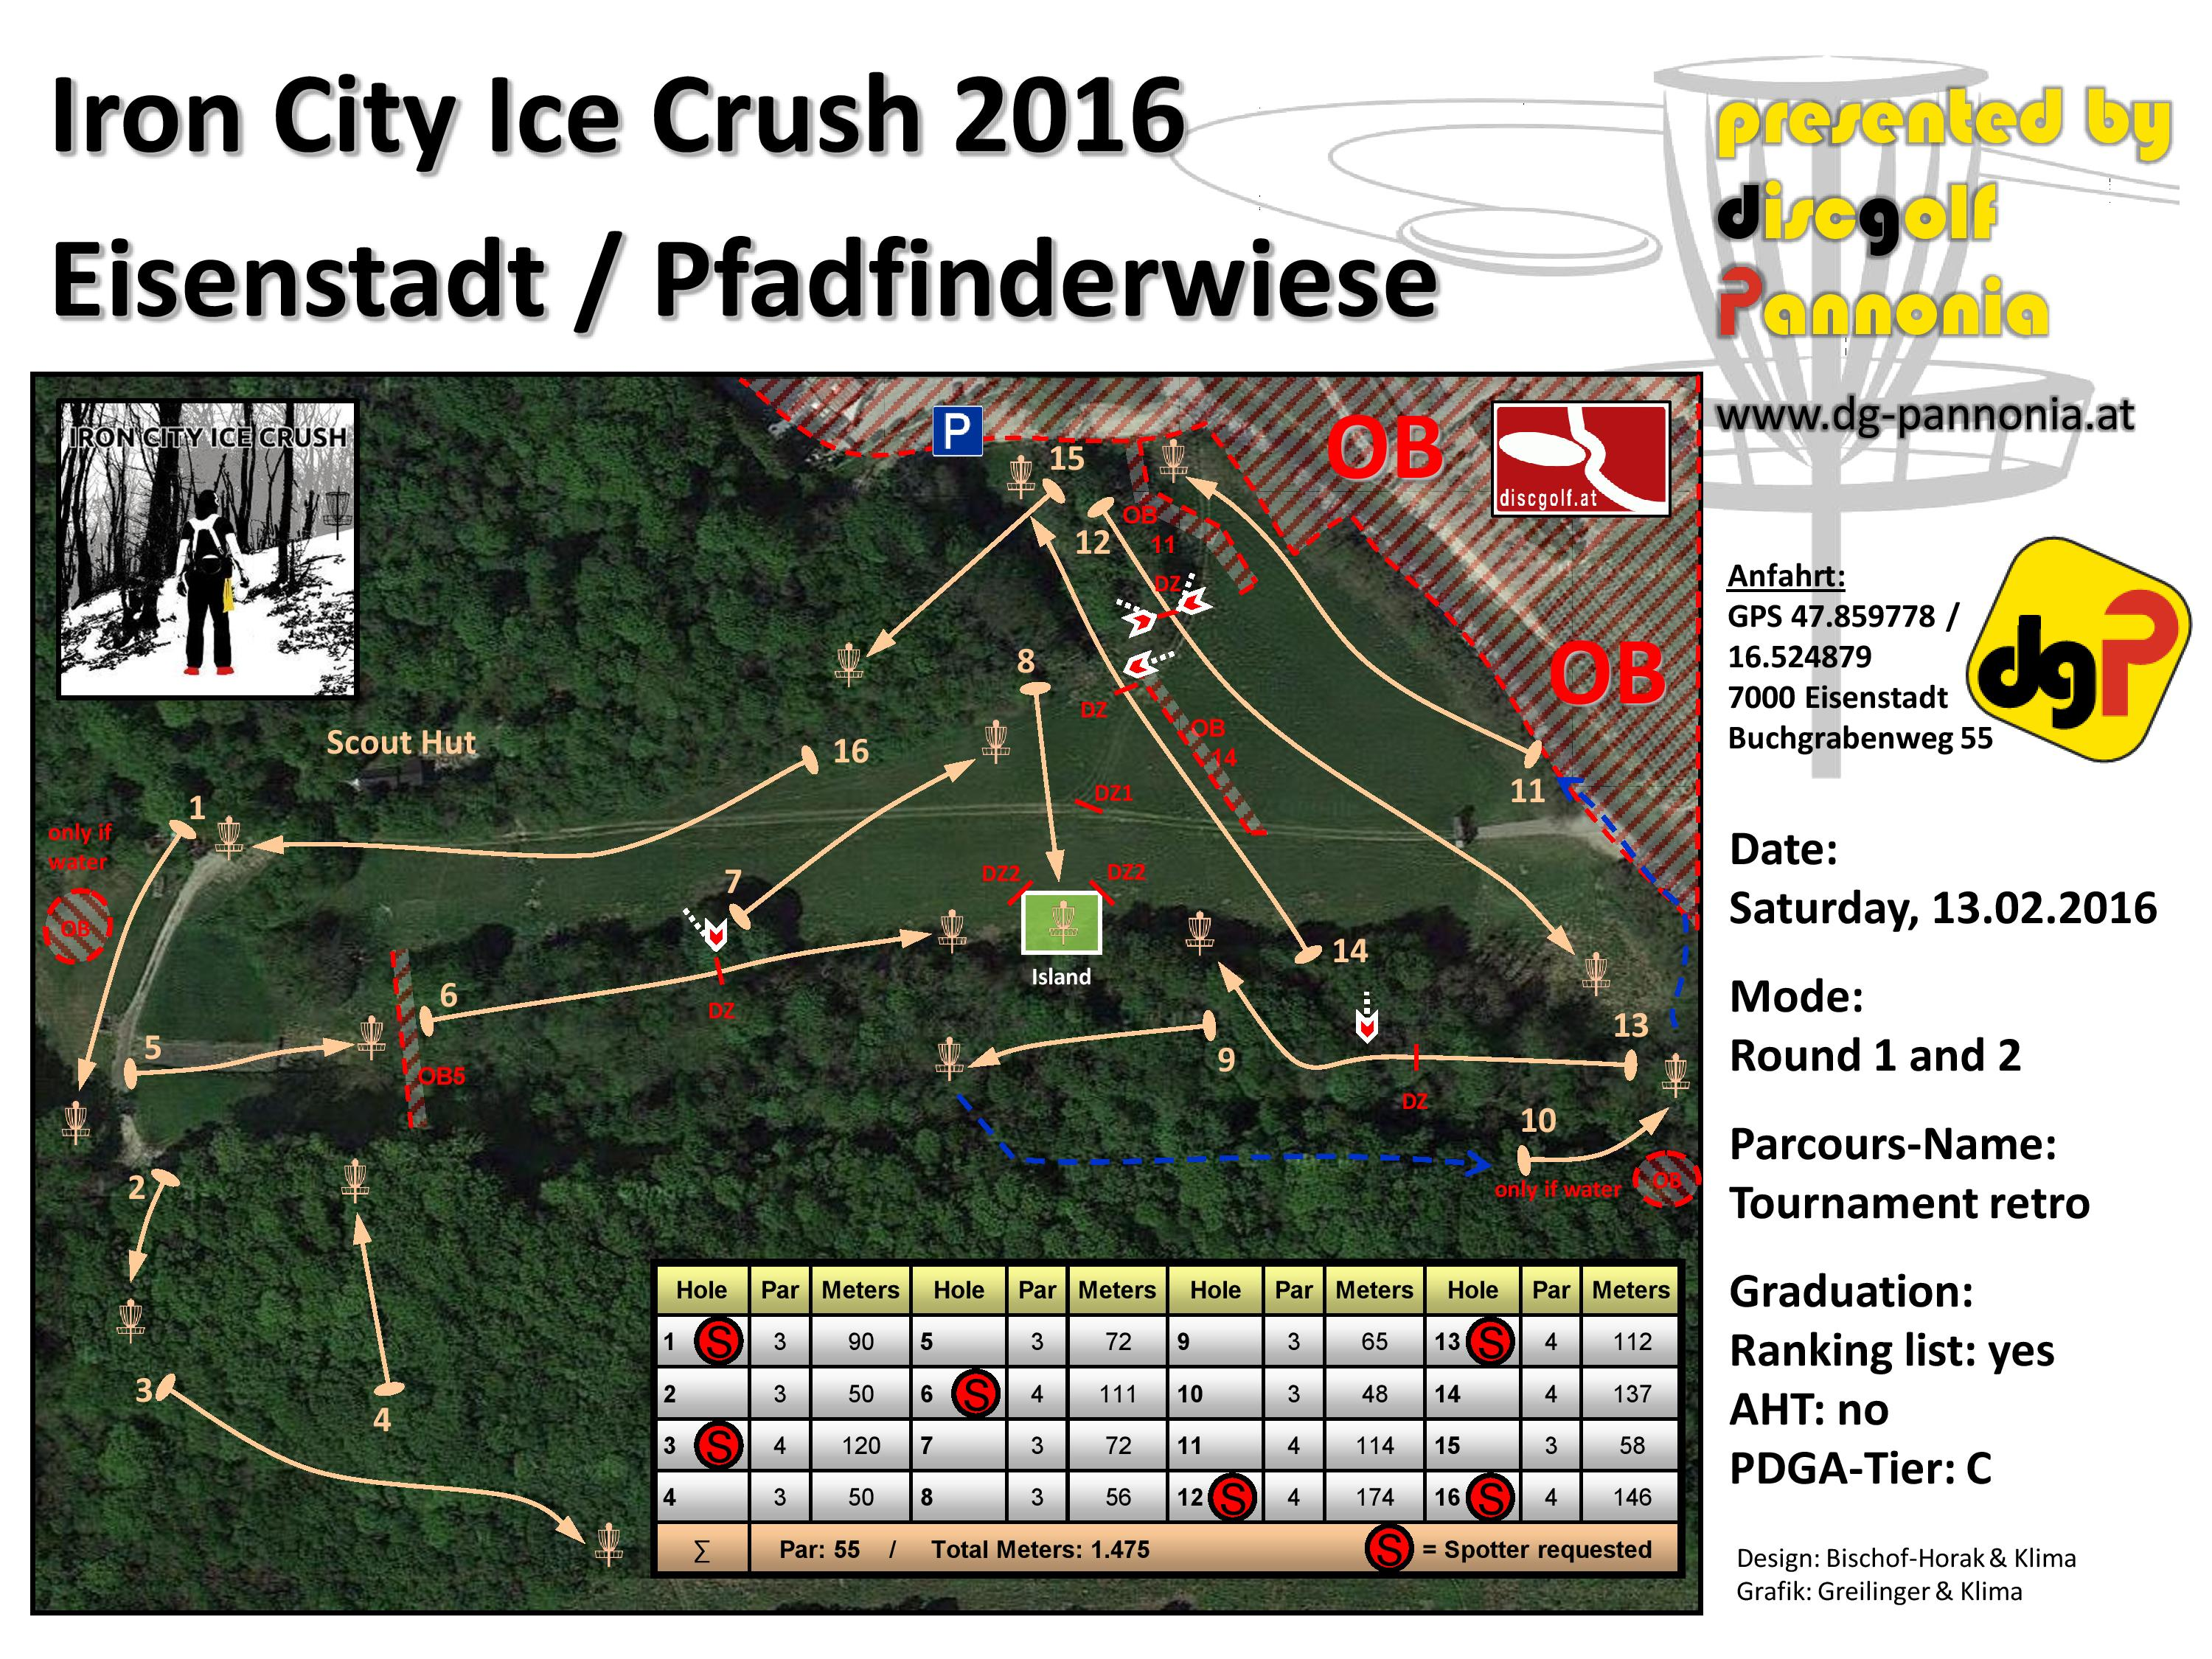 Iron City Ice Crush 2016